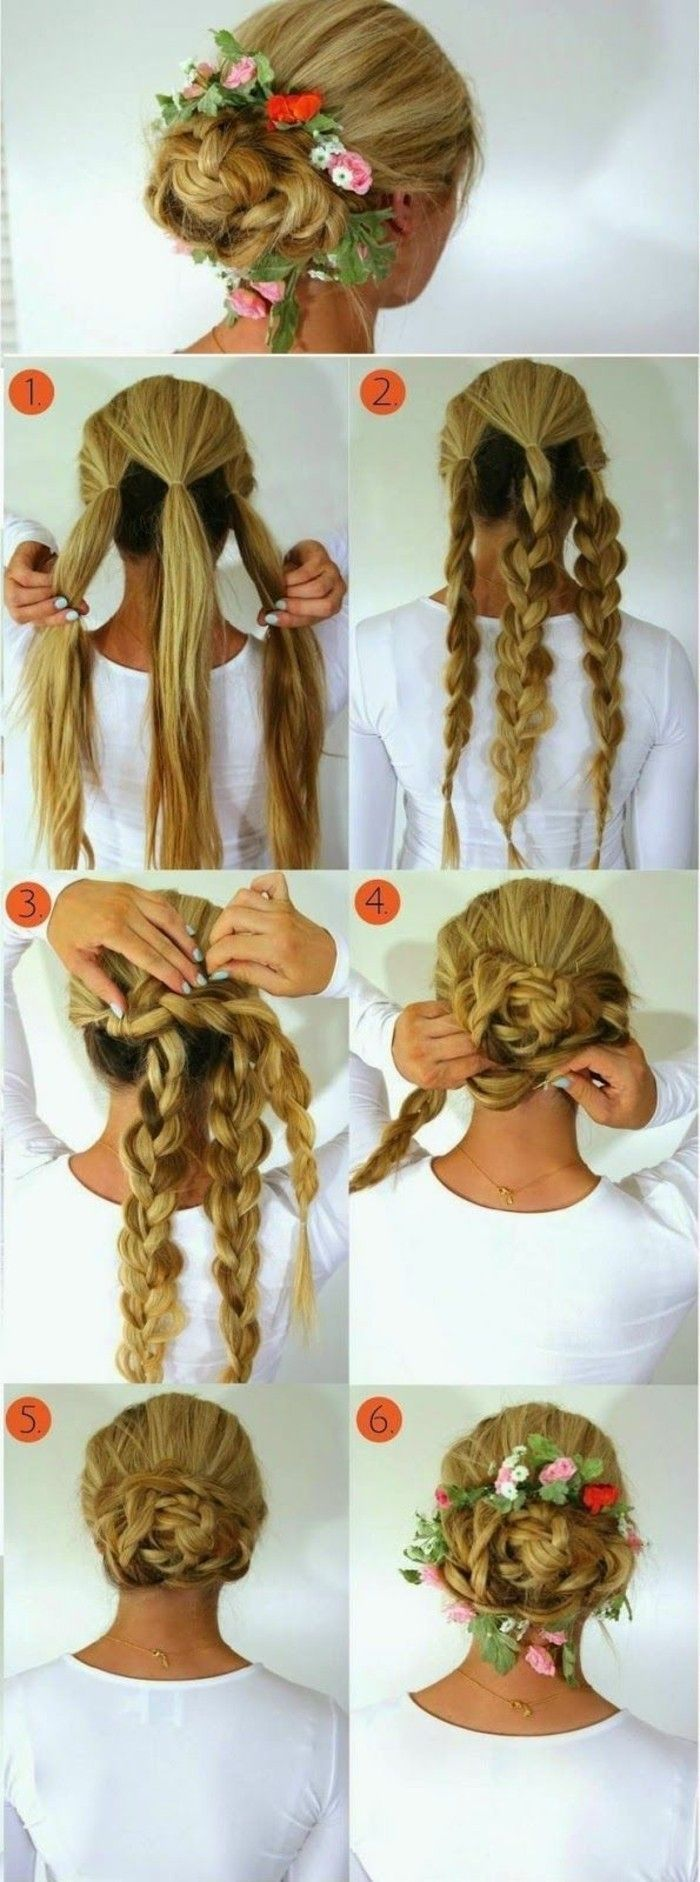 69 Oktoberfest hairstyles and instructions  for an unforgettable Oktoberfest exp… 0a84a2a18454699a292526f6ac172dbb